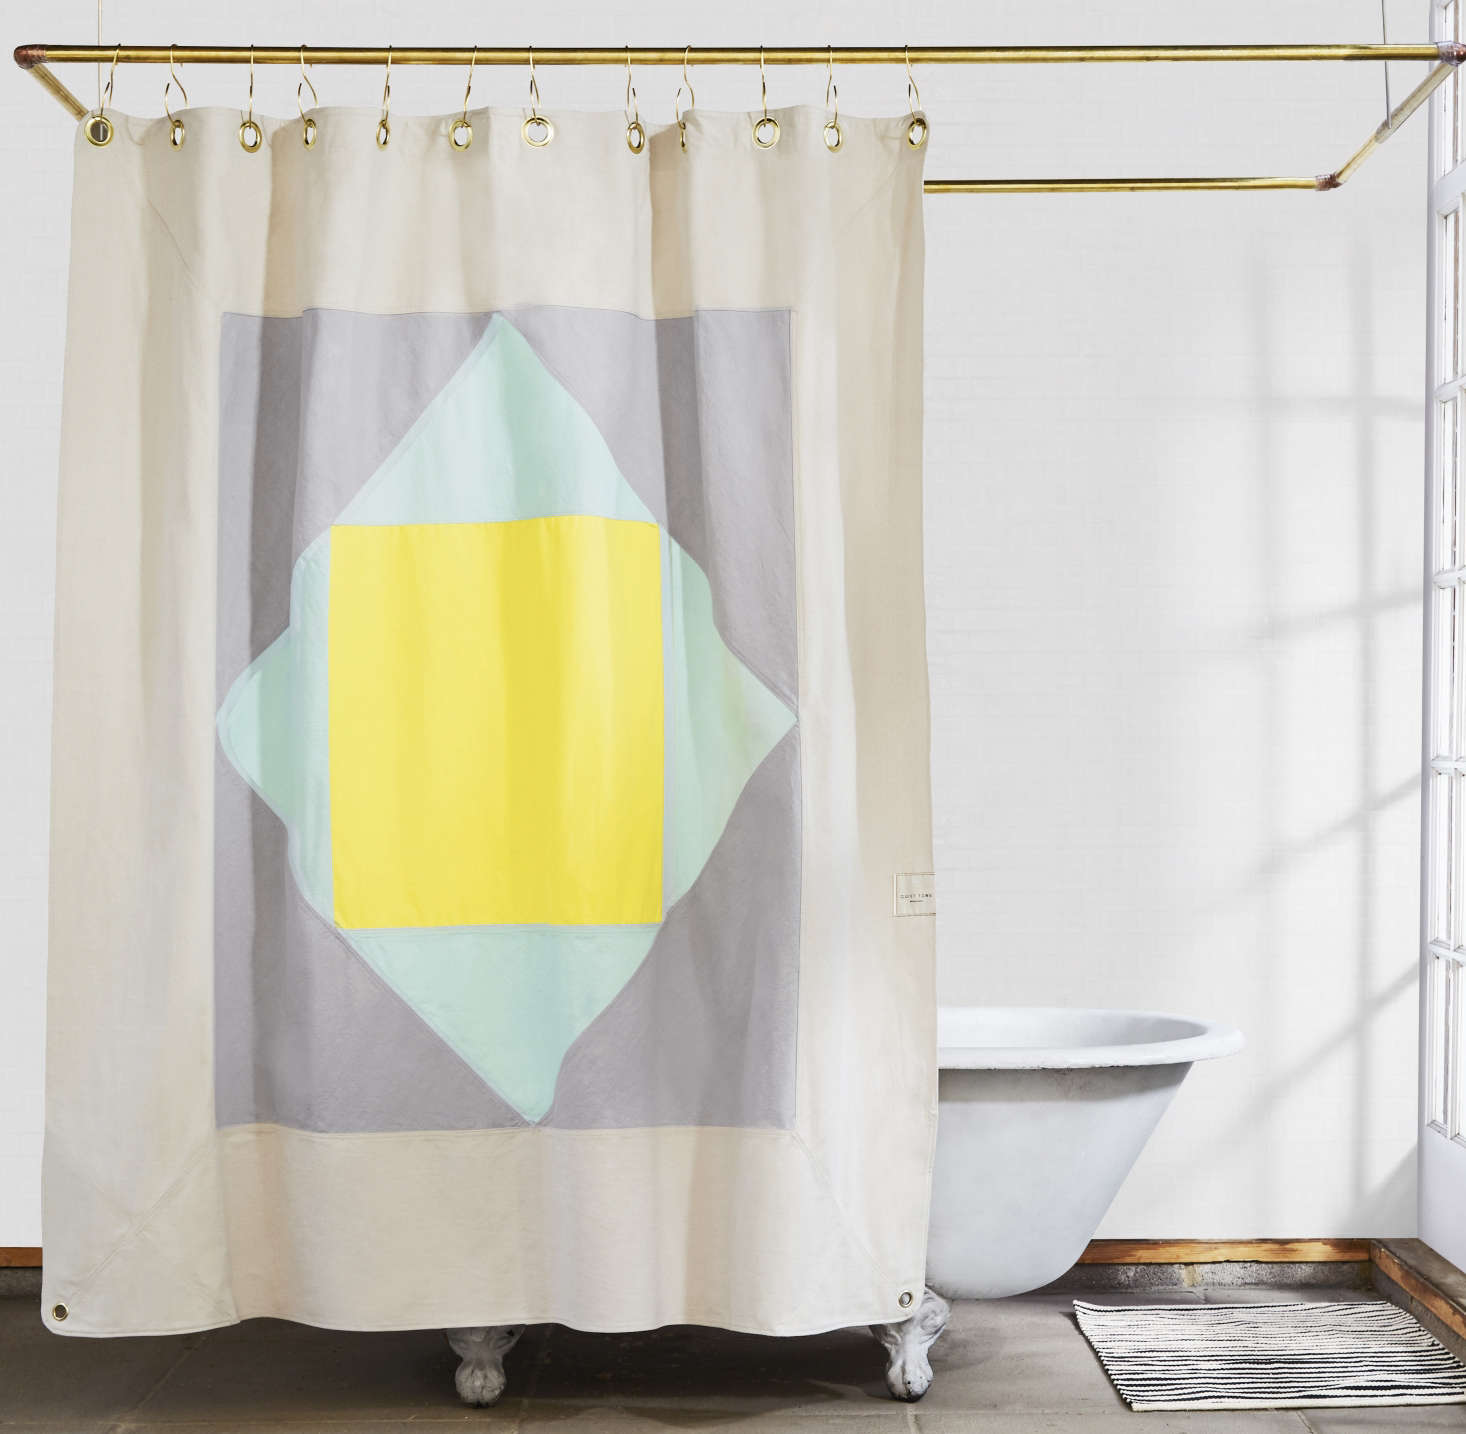 Statement Shower Curtains From Quiet Town Plus Glamorous